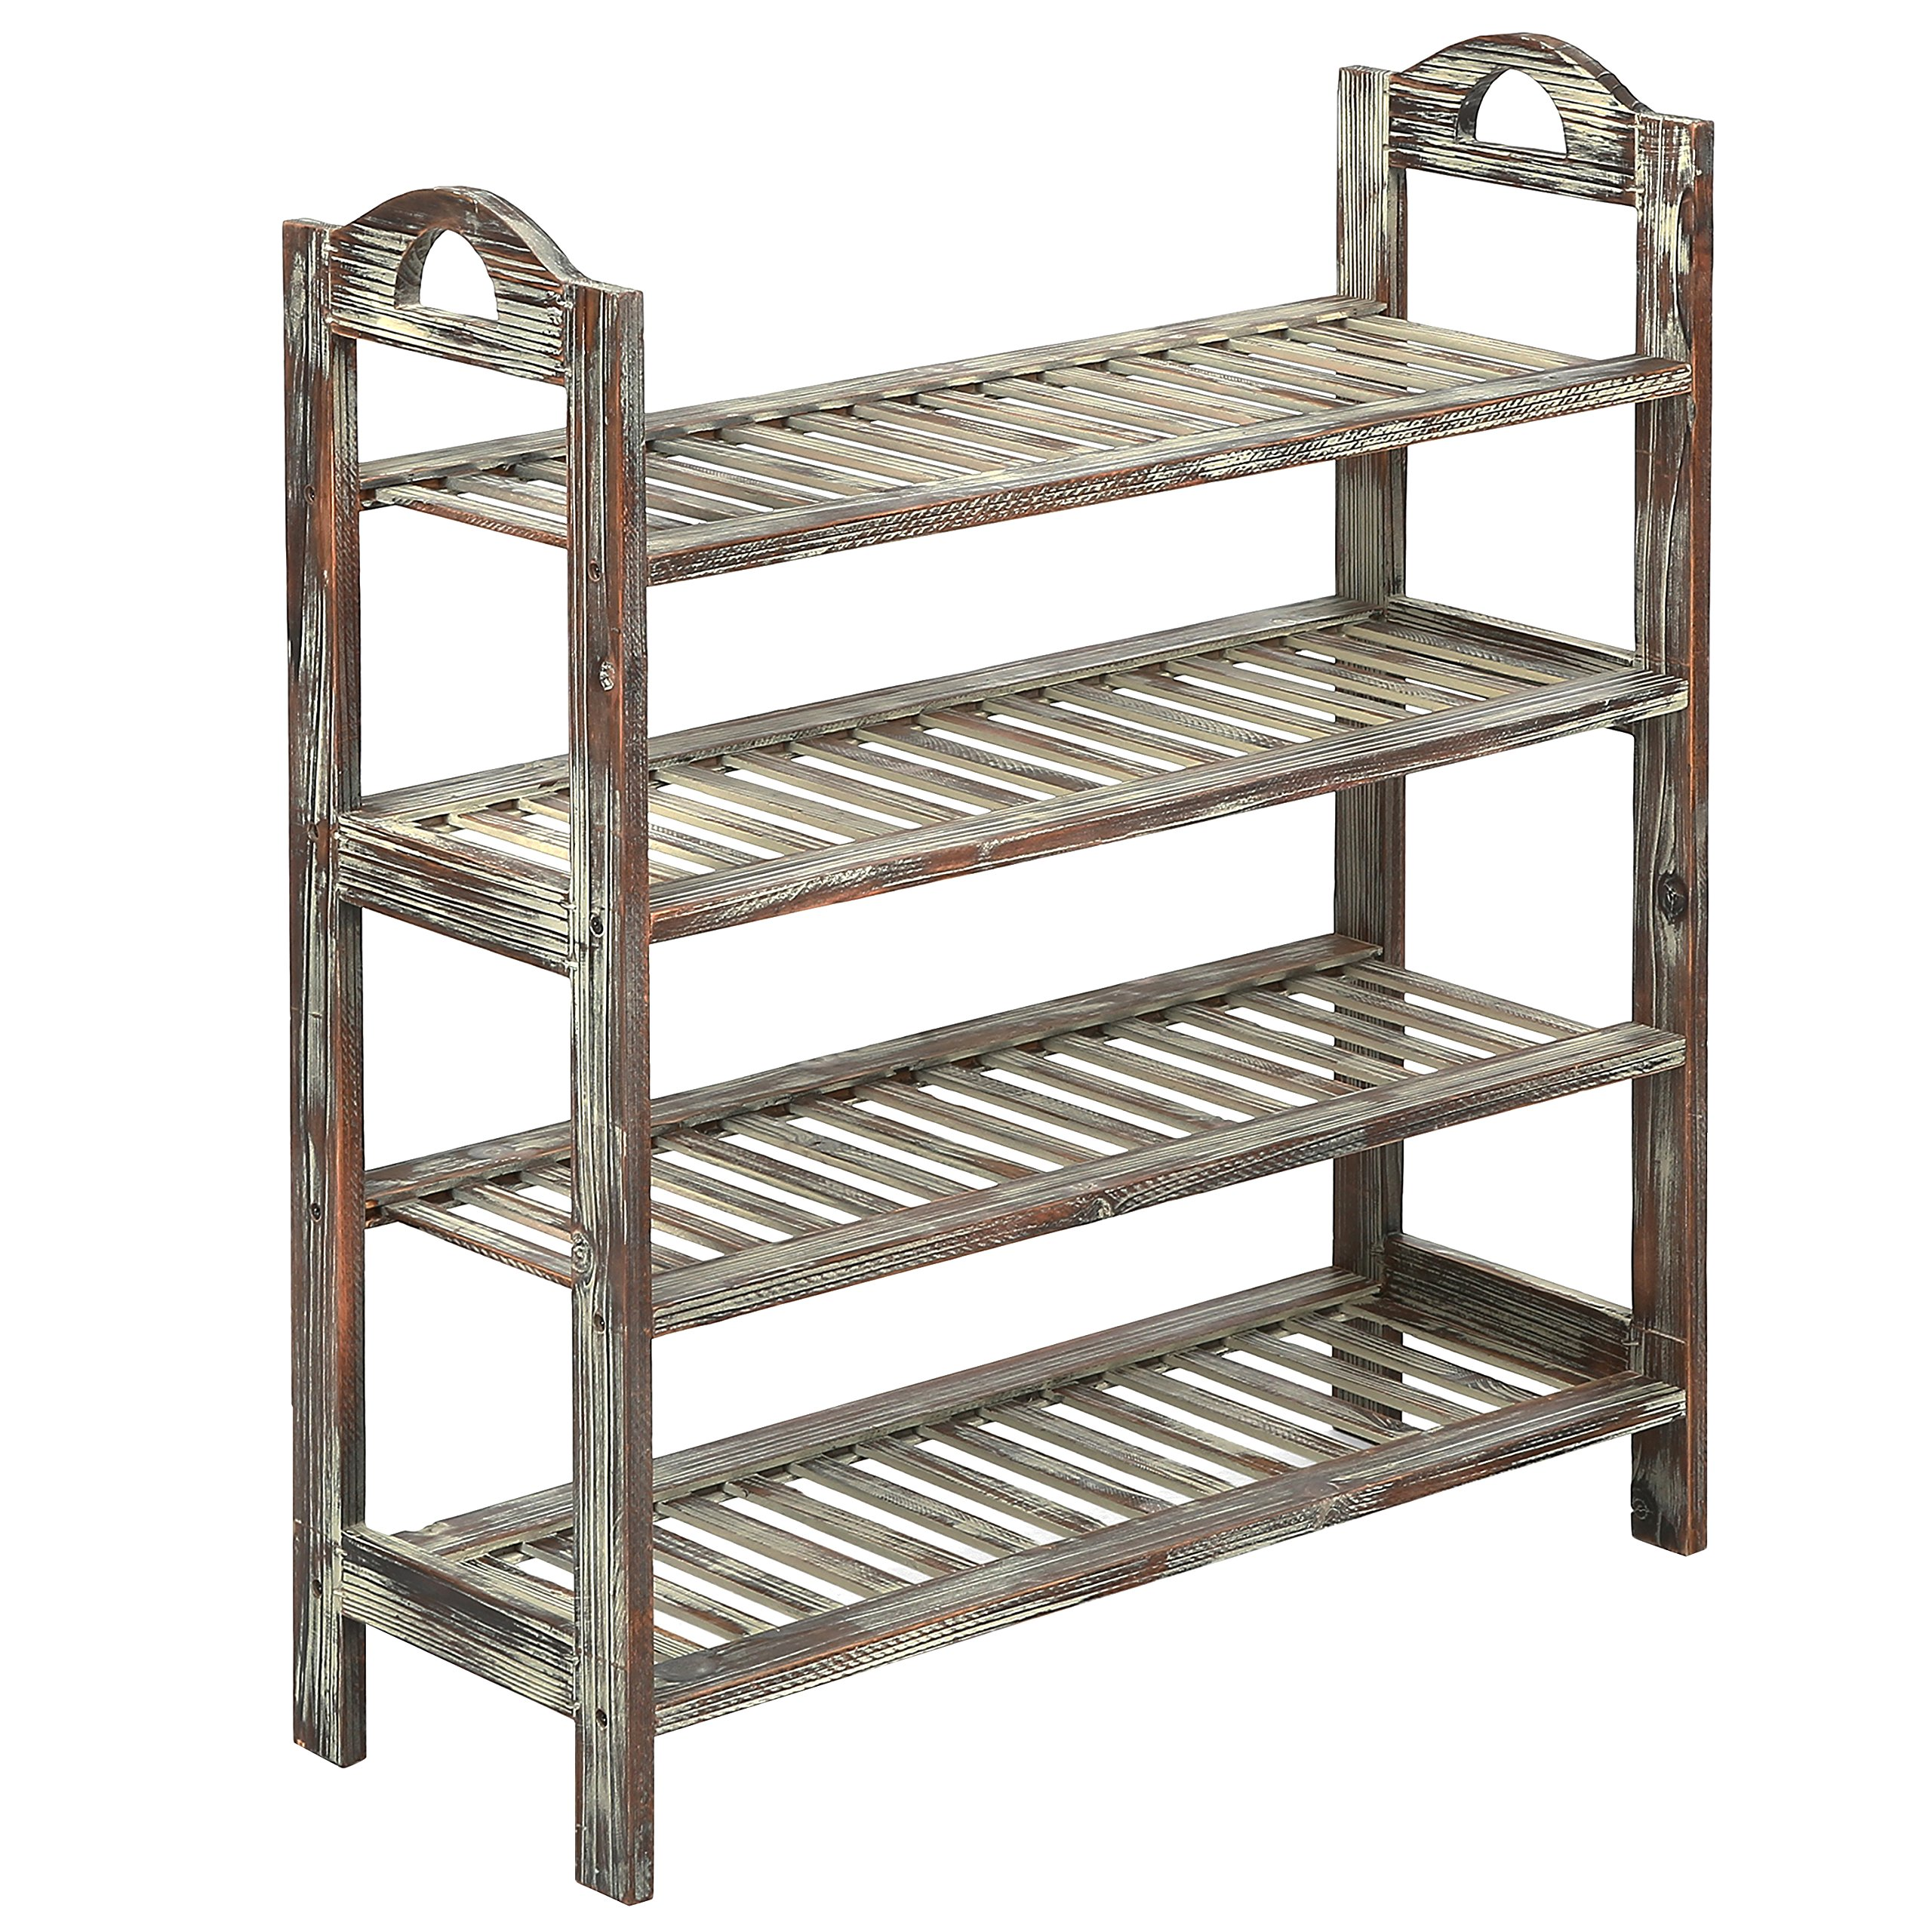 4 Tier Country Rustic Torched Wood Slatted Storage Shoe Rack, Entryway Utility Shelf